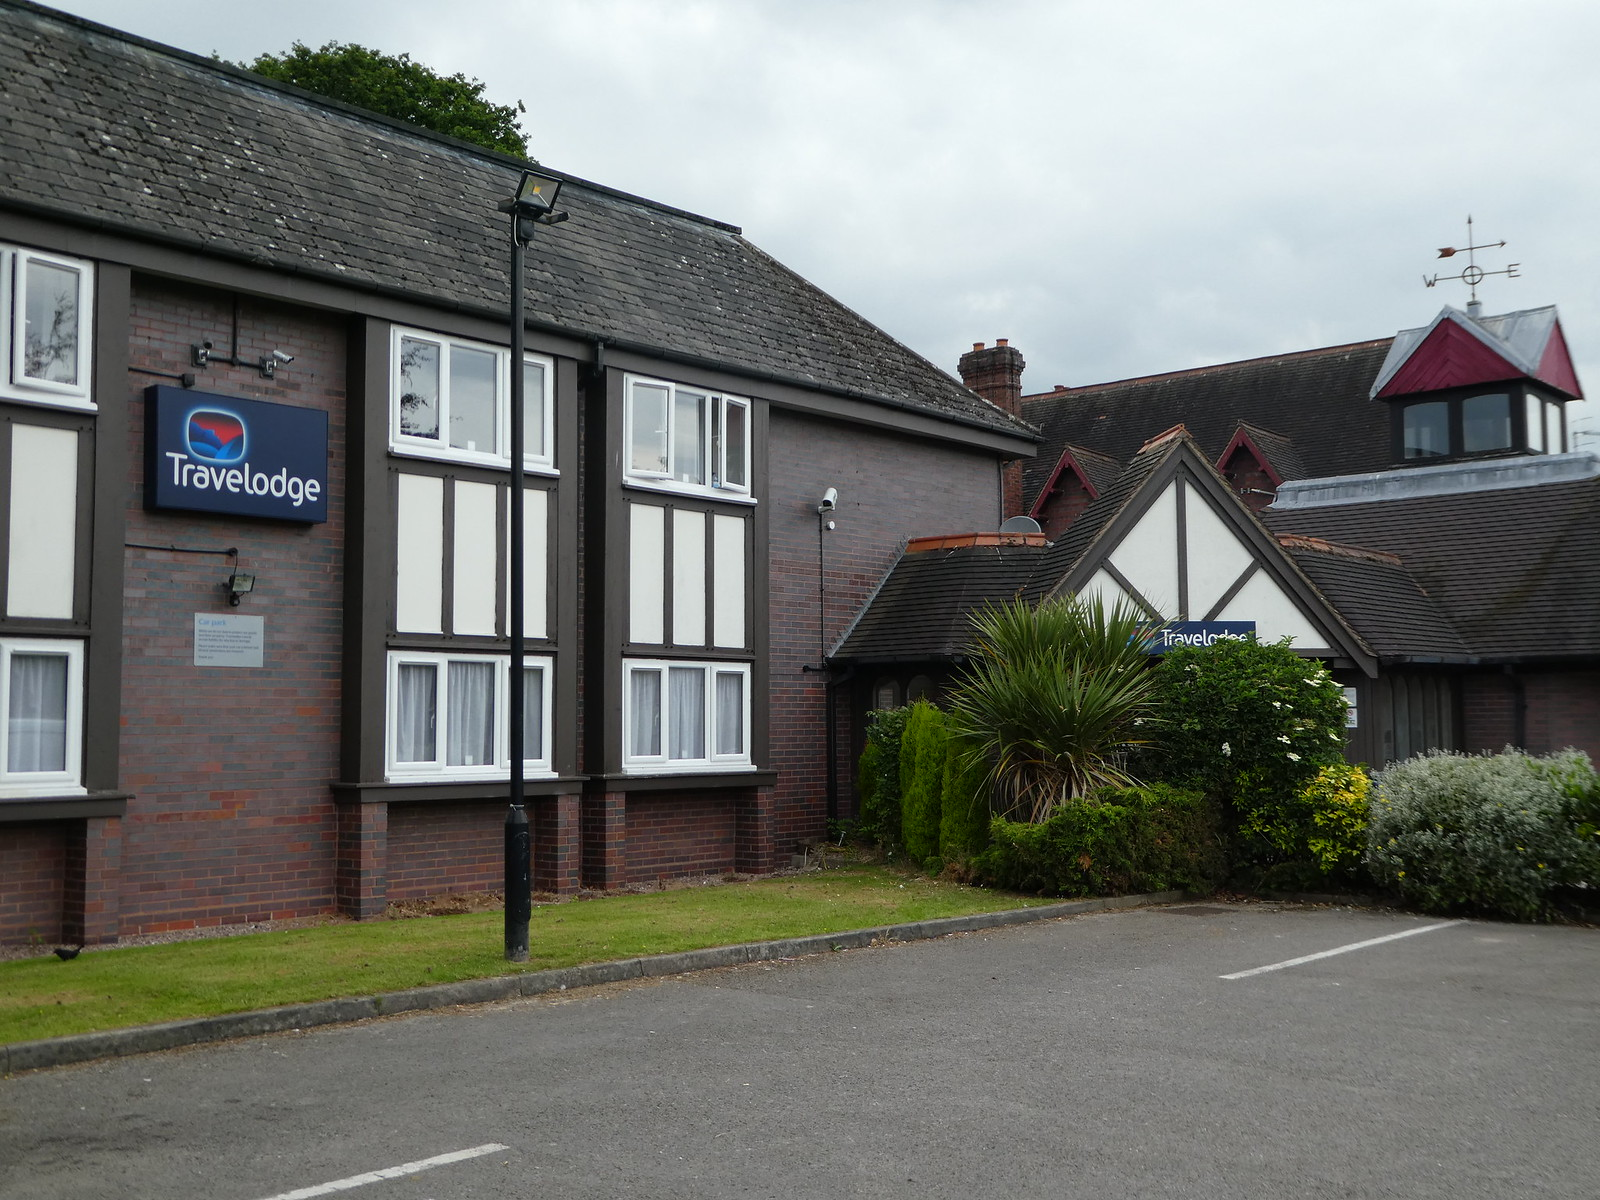 Travelodge, Trentham, Stoke-on-Trent